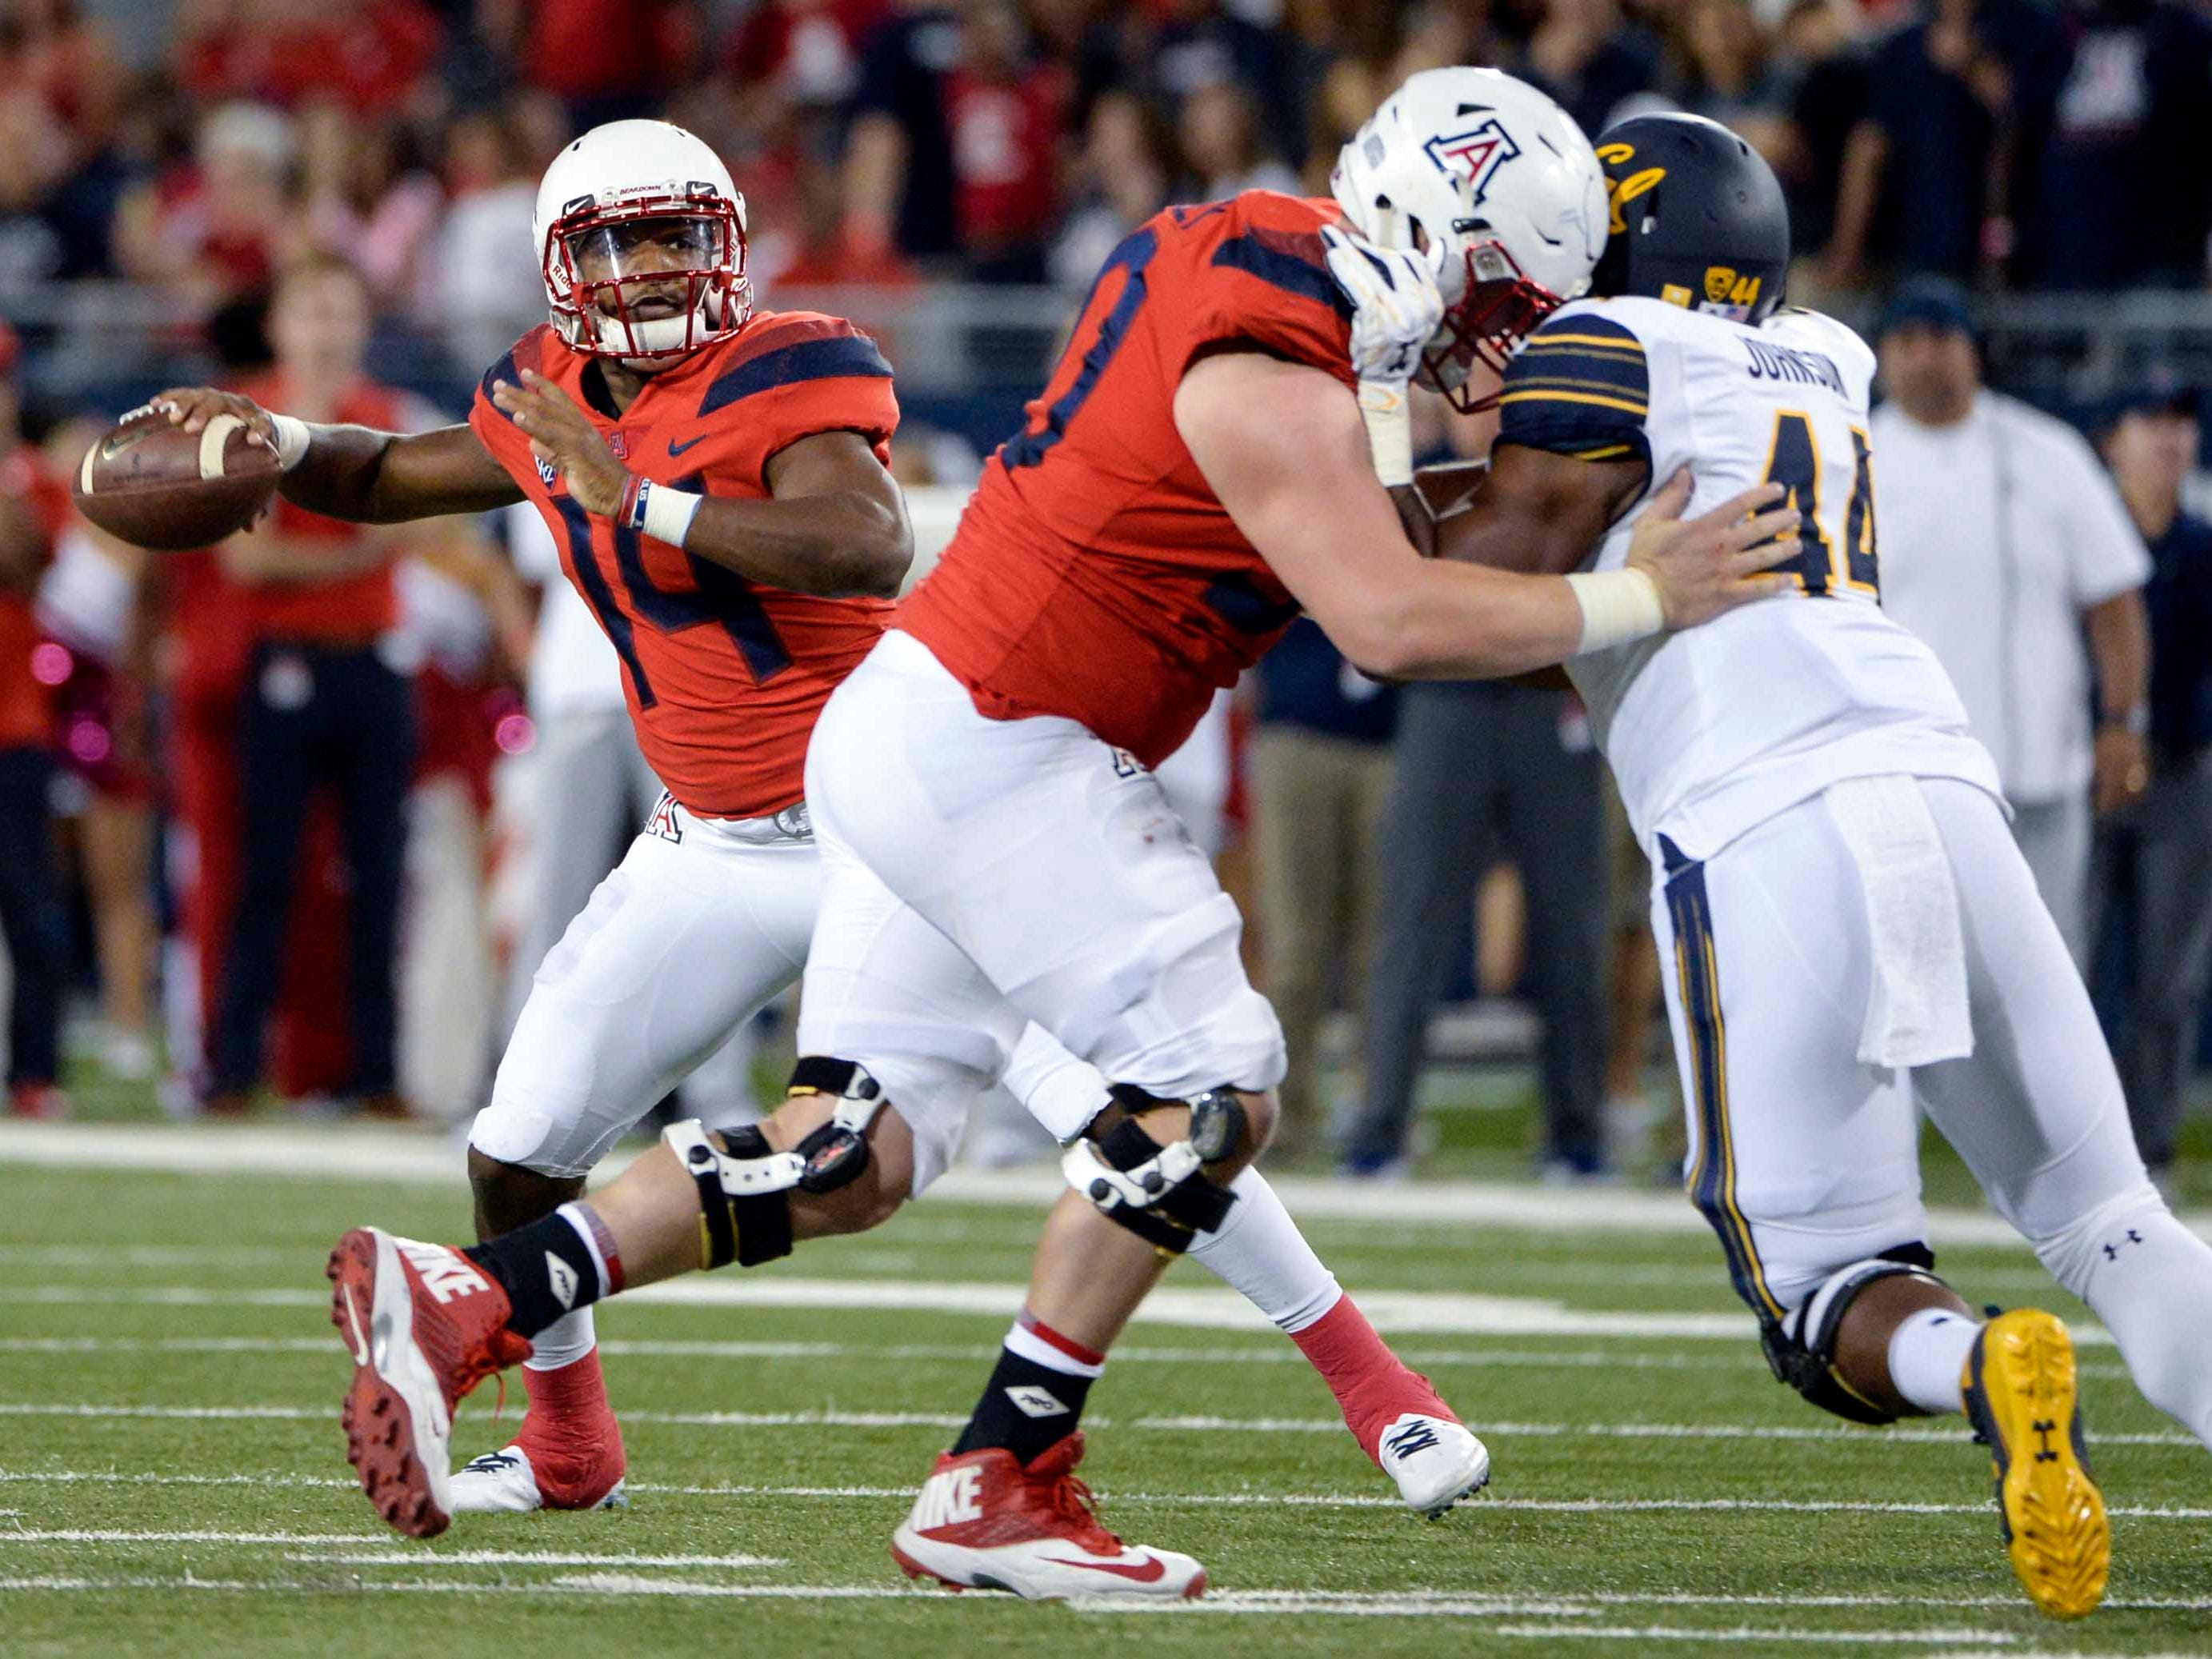 Oct 6, 2018; Tucson, AZ, USA; Arizona Wildcats quarterback Khalil Tate (14) passes the ball against the California Golden Bears during the first half at Arizona Stadium. Mandatory Credit: Casey Sapio-USA TODAY Sports